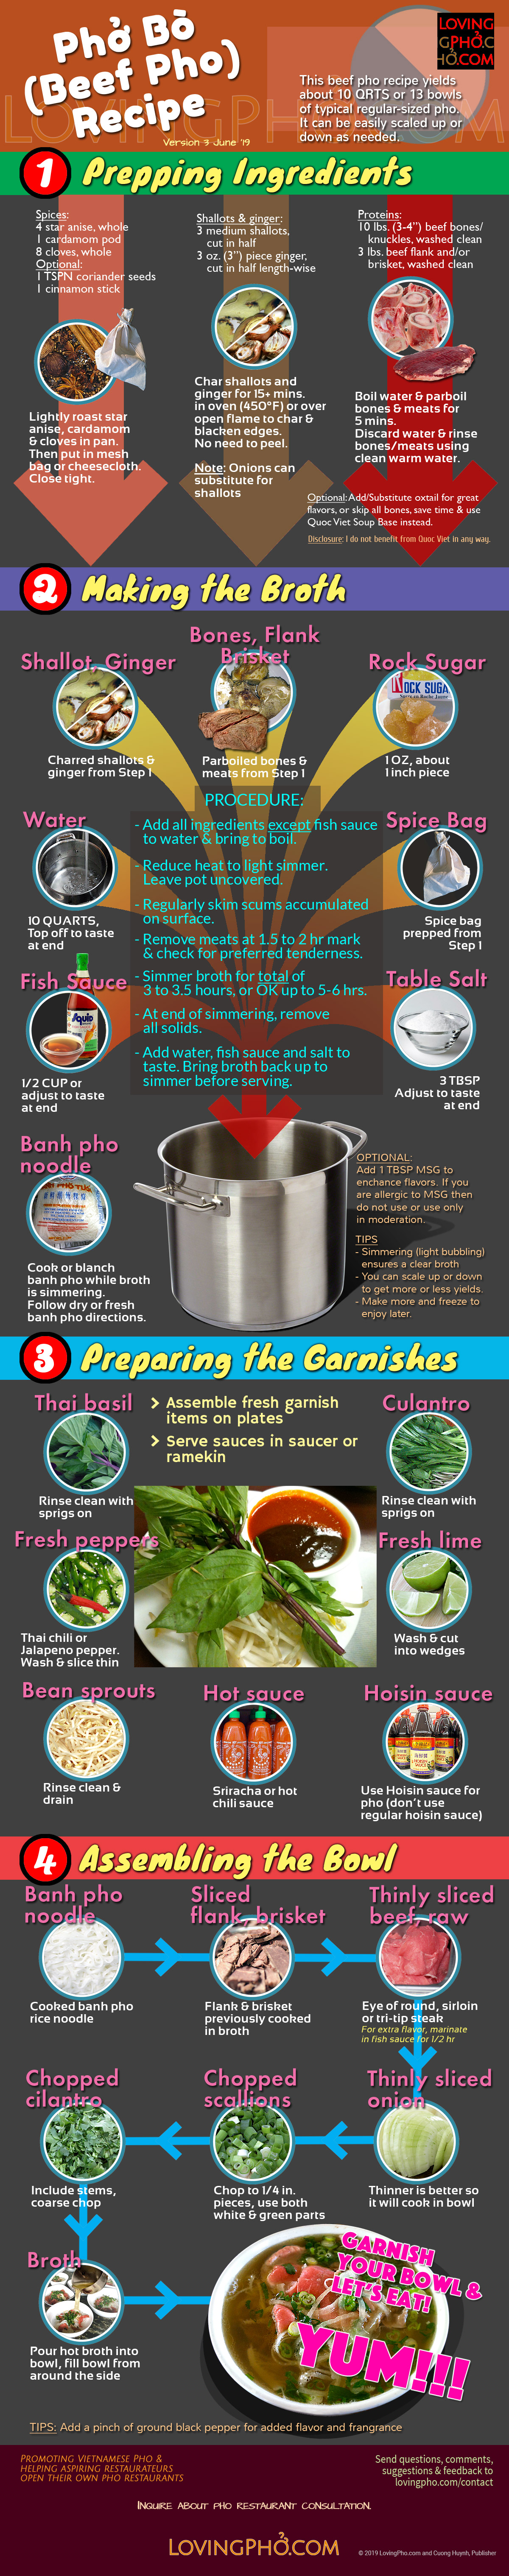 Pho bo recipe infographic by lovingpho.com